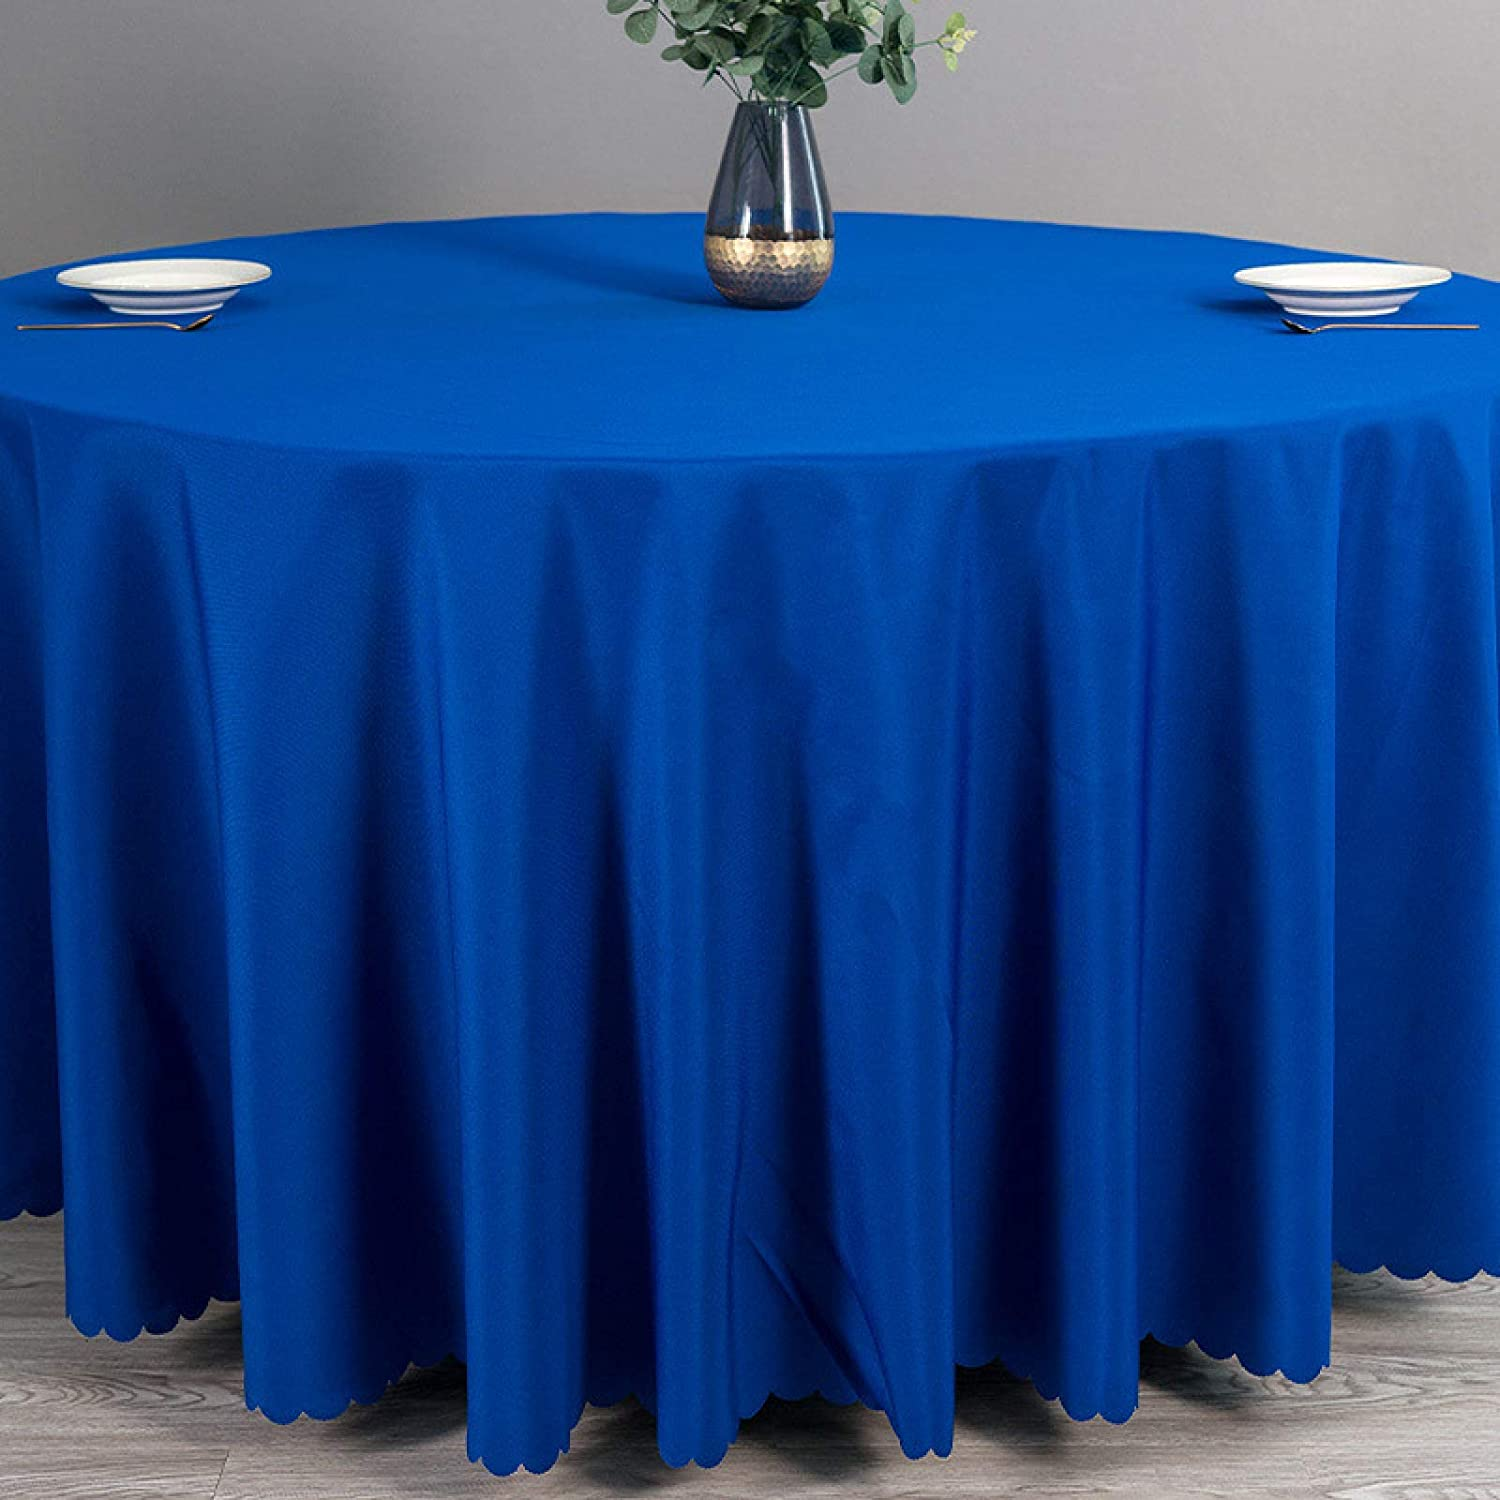 Tablecloths Tablecloth Cotton Free shipping Linen Portland Mall Em Wrinkle-Free Washable